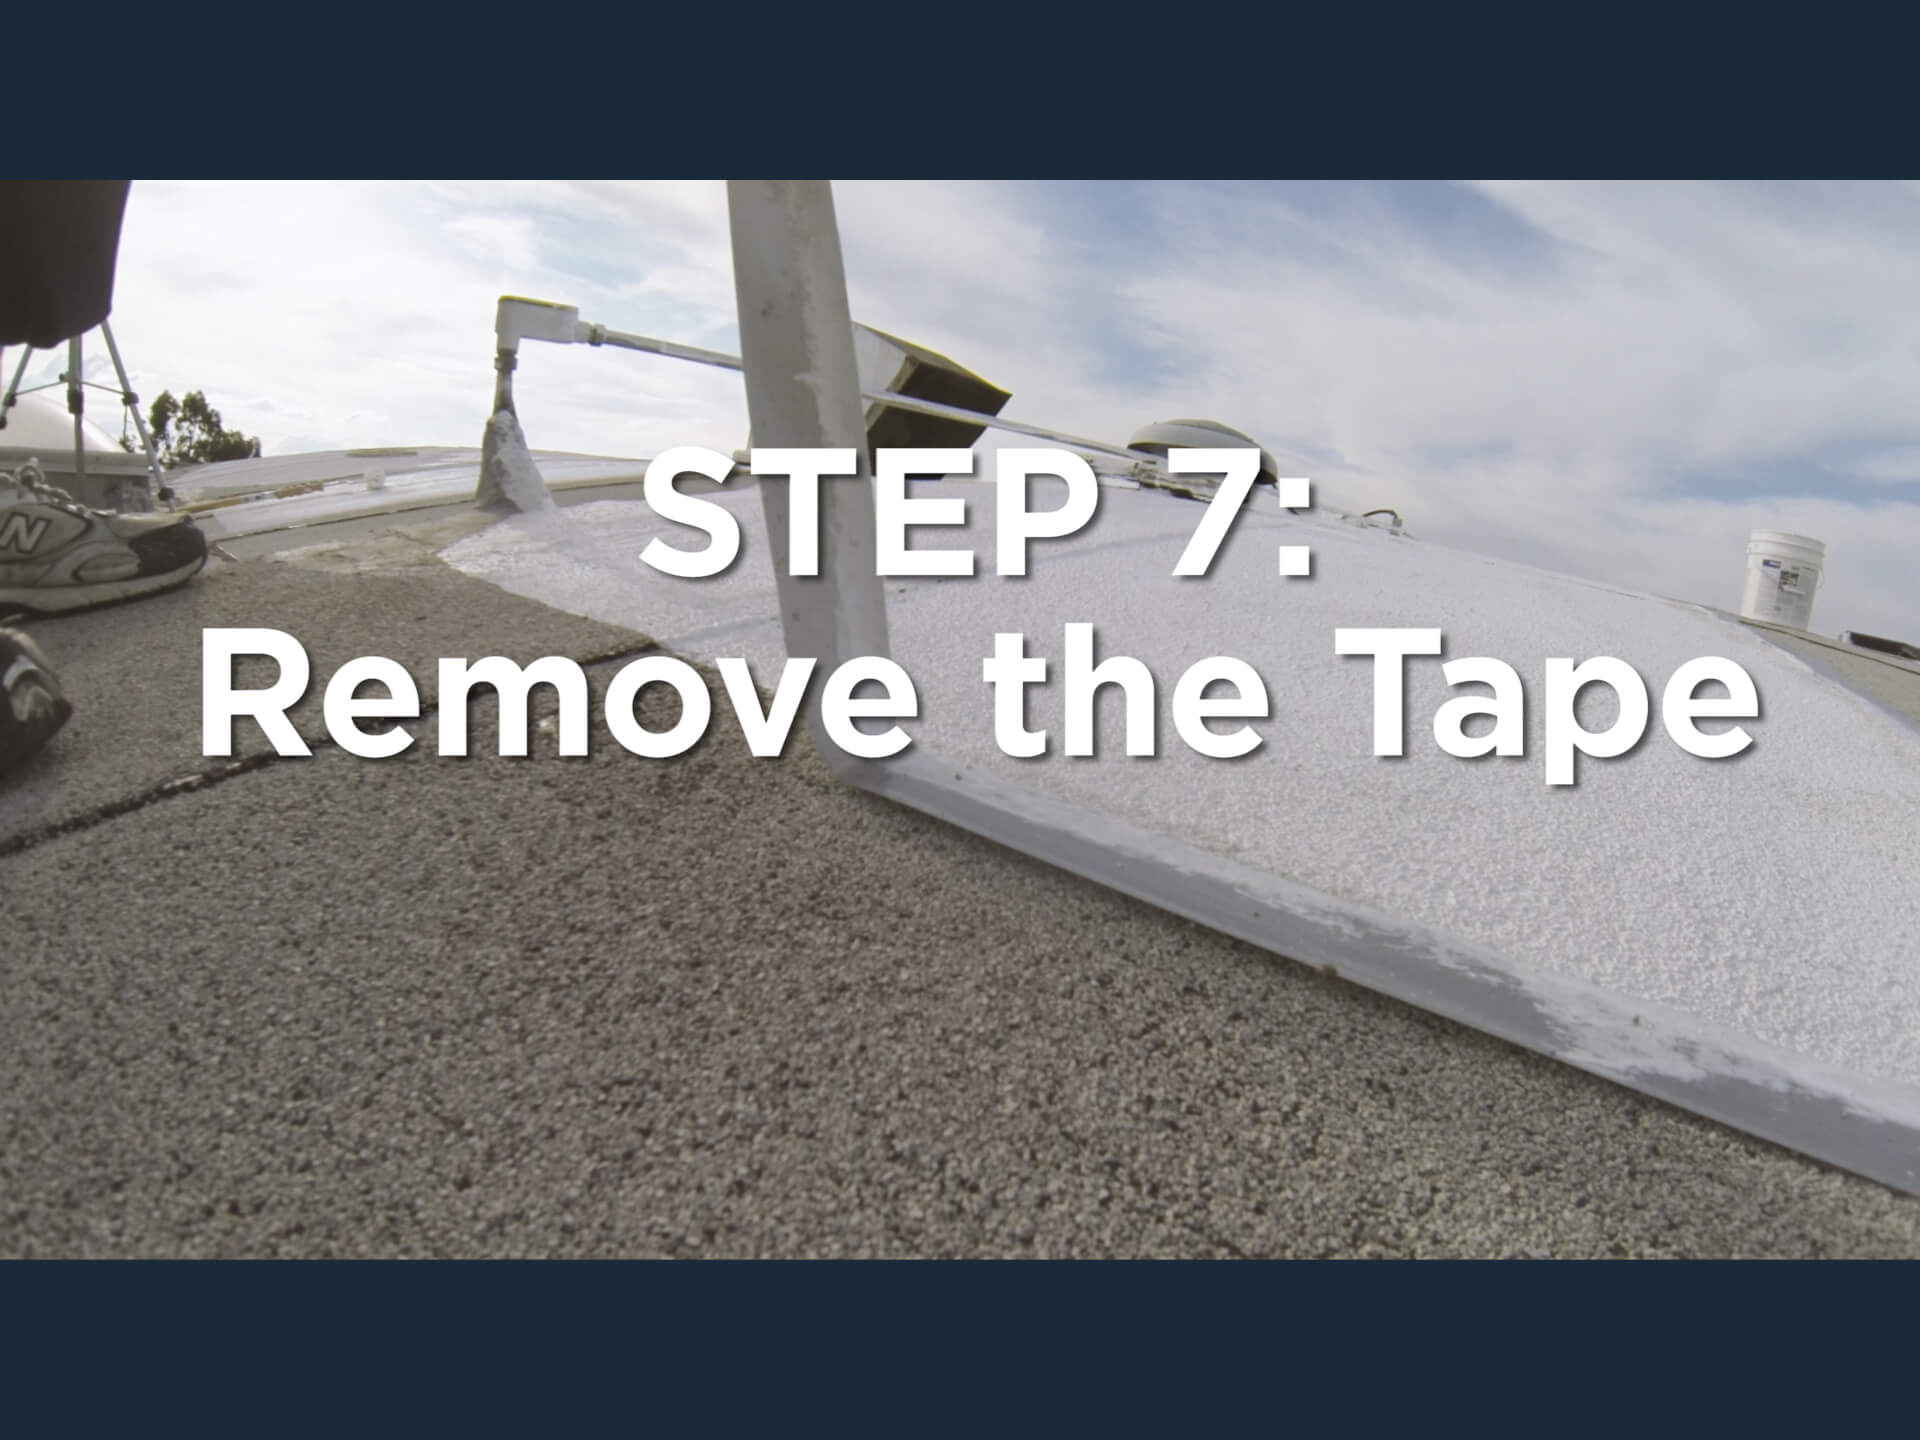 office-roof-logo-step7